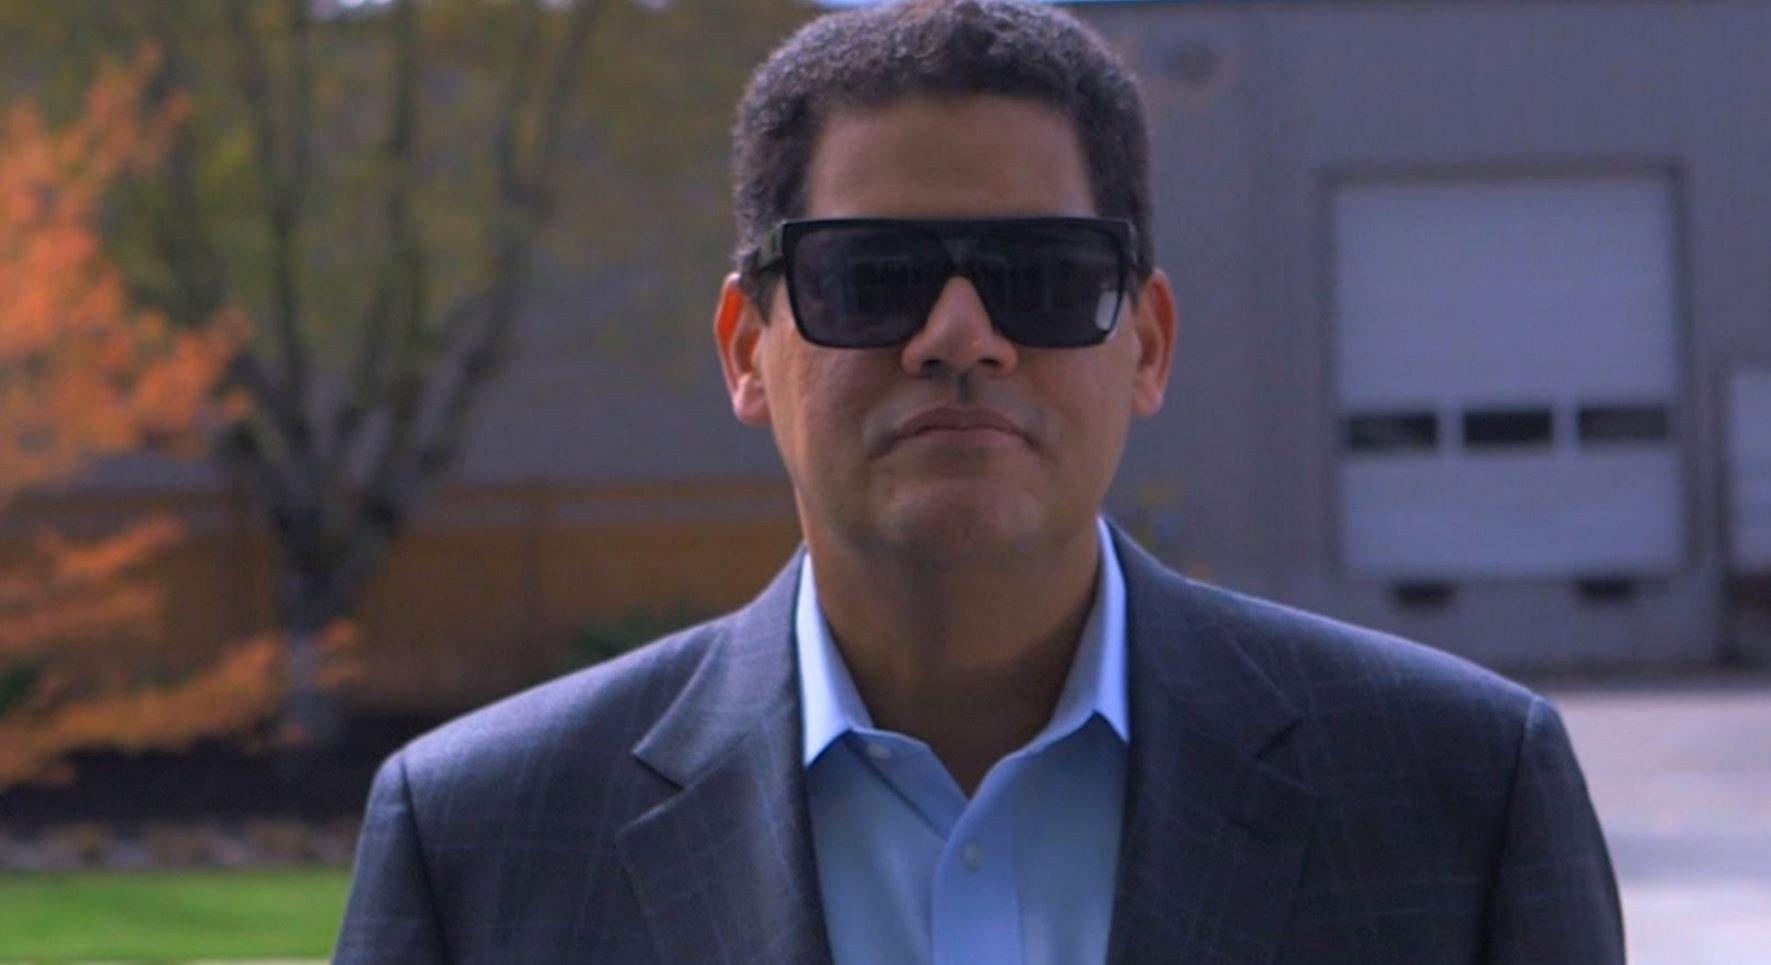 Nintendo's Reggie Fils-Aime retiring in April screenshot